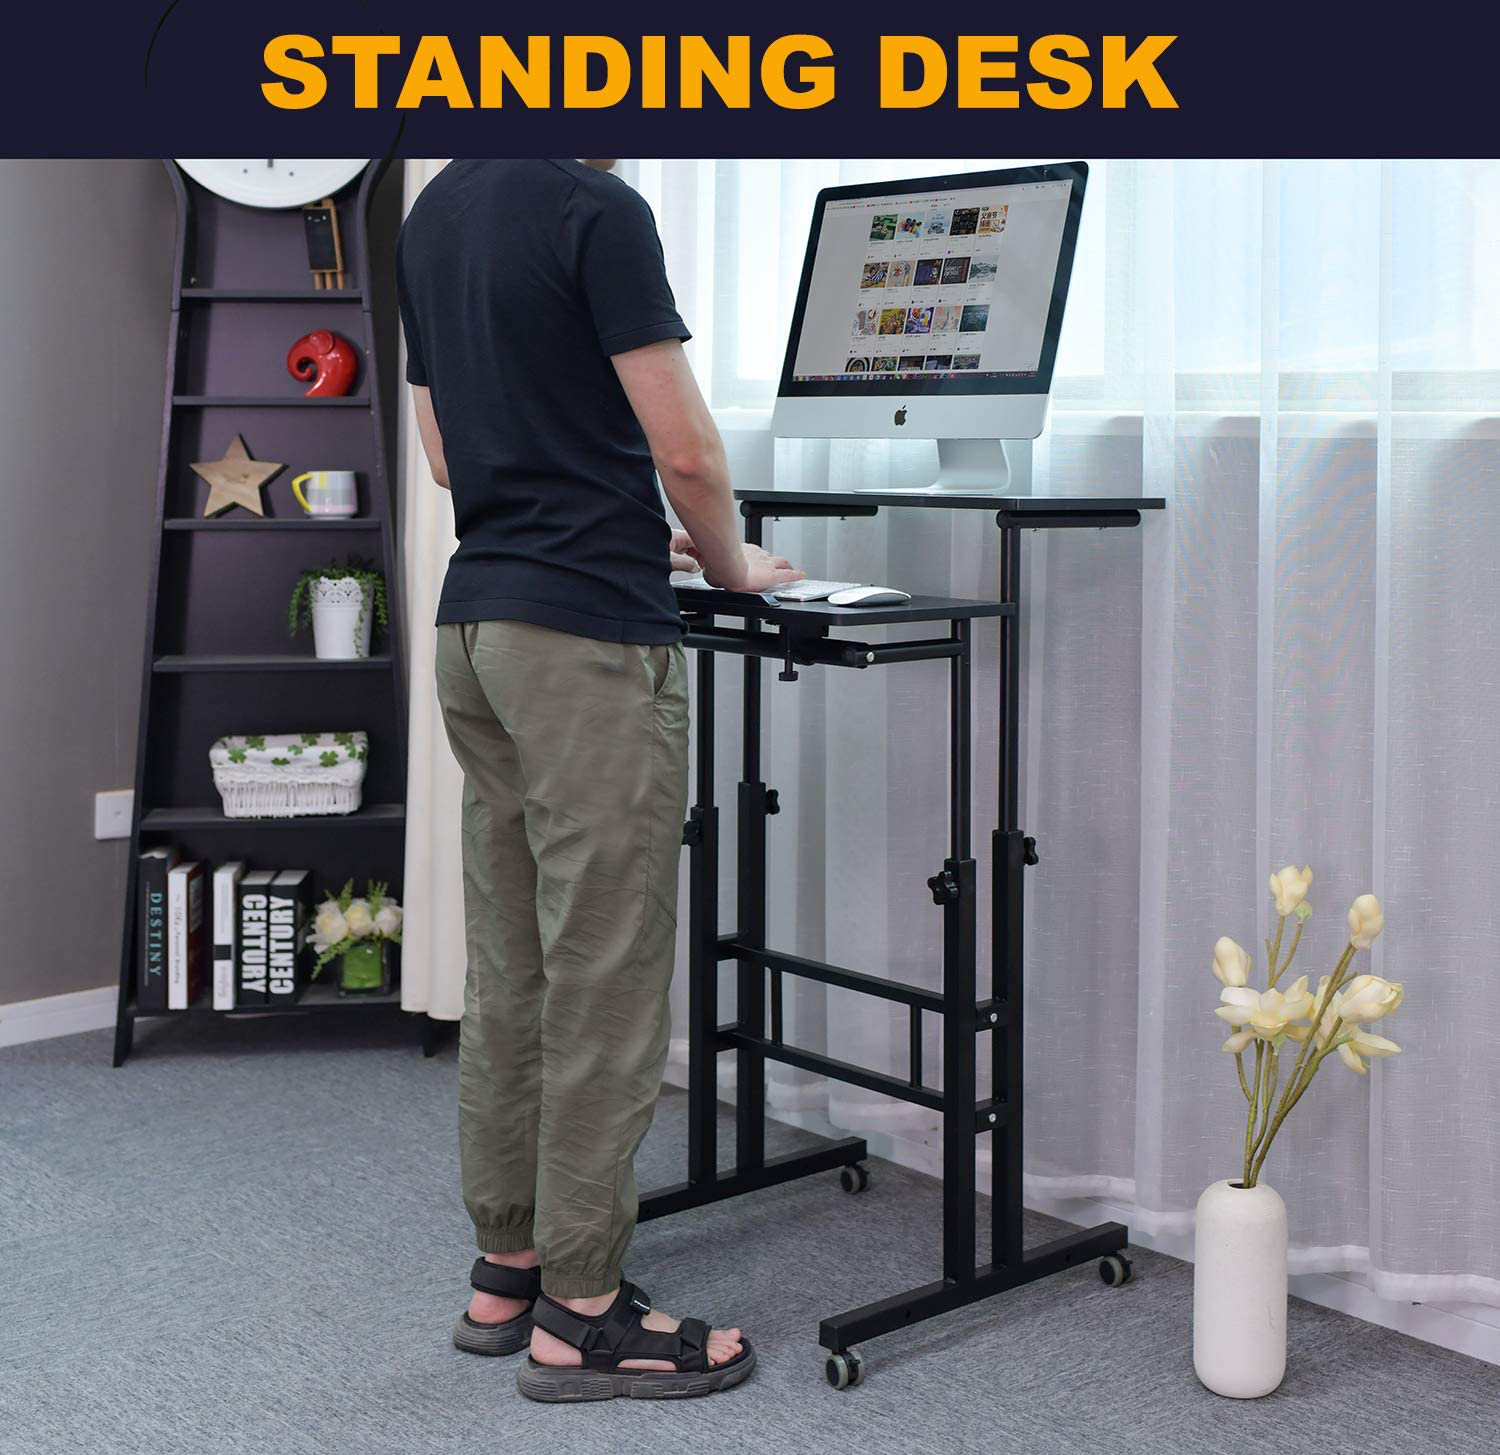 AIZ Mobile Standing Desk, Adjustable Computer Desk Rolling Laptop Cart on Wheels Home Office Computer Workstation, Portable Laptop Stand for Small Spaces Tall Table for Standing or Sitting, Black